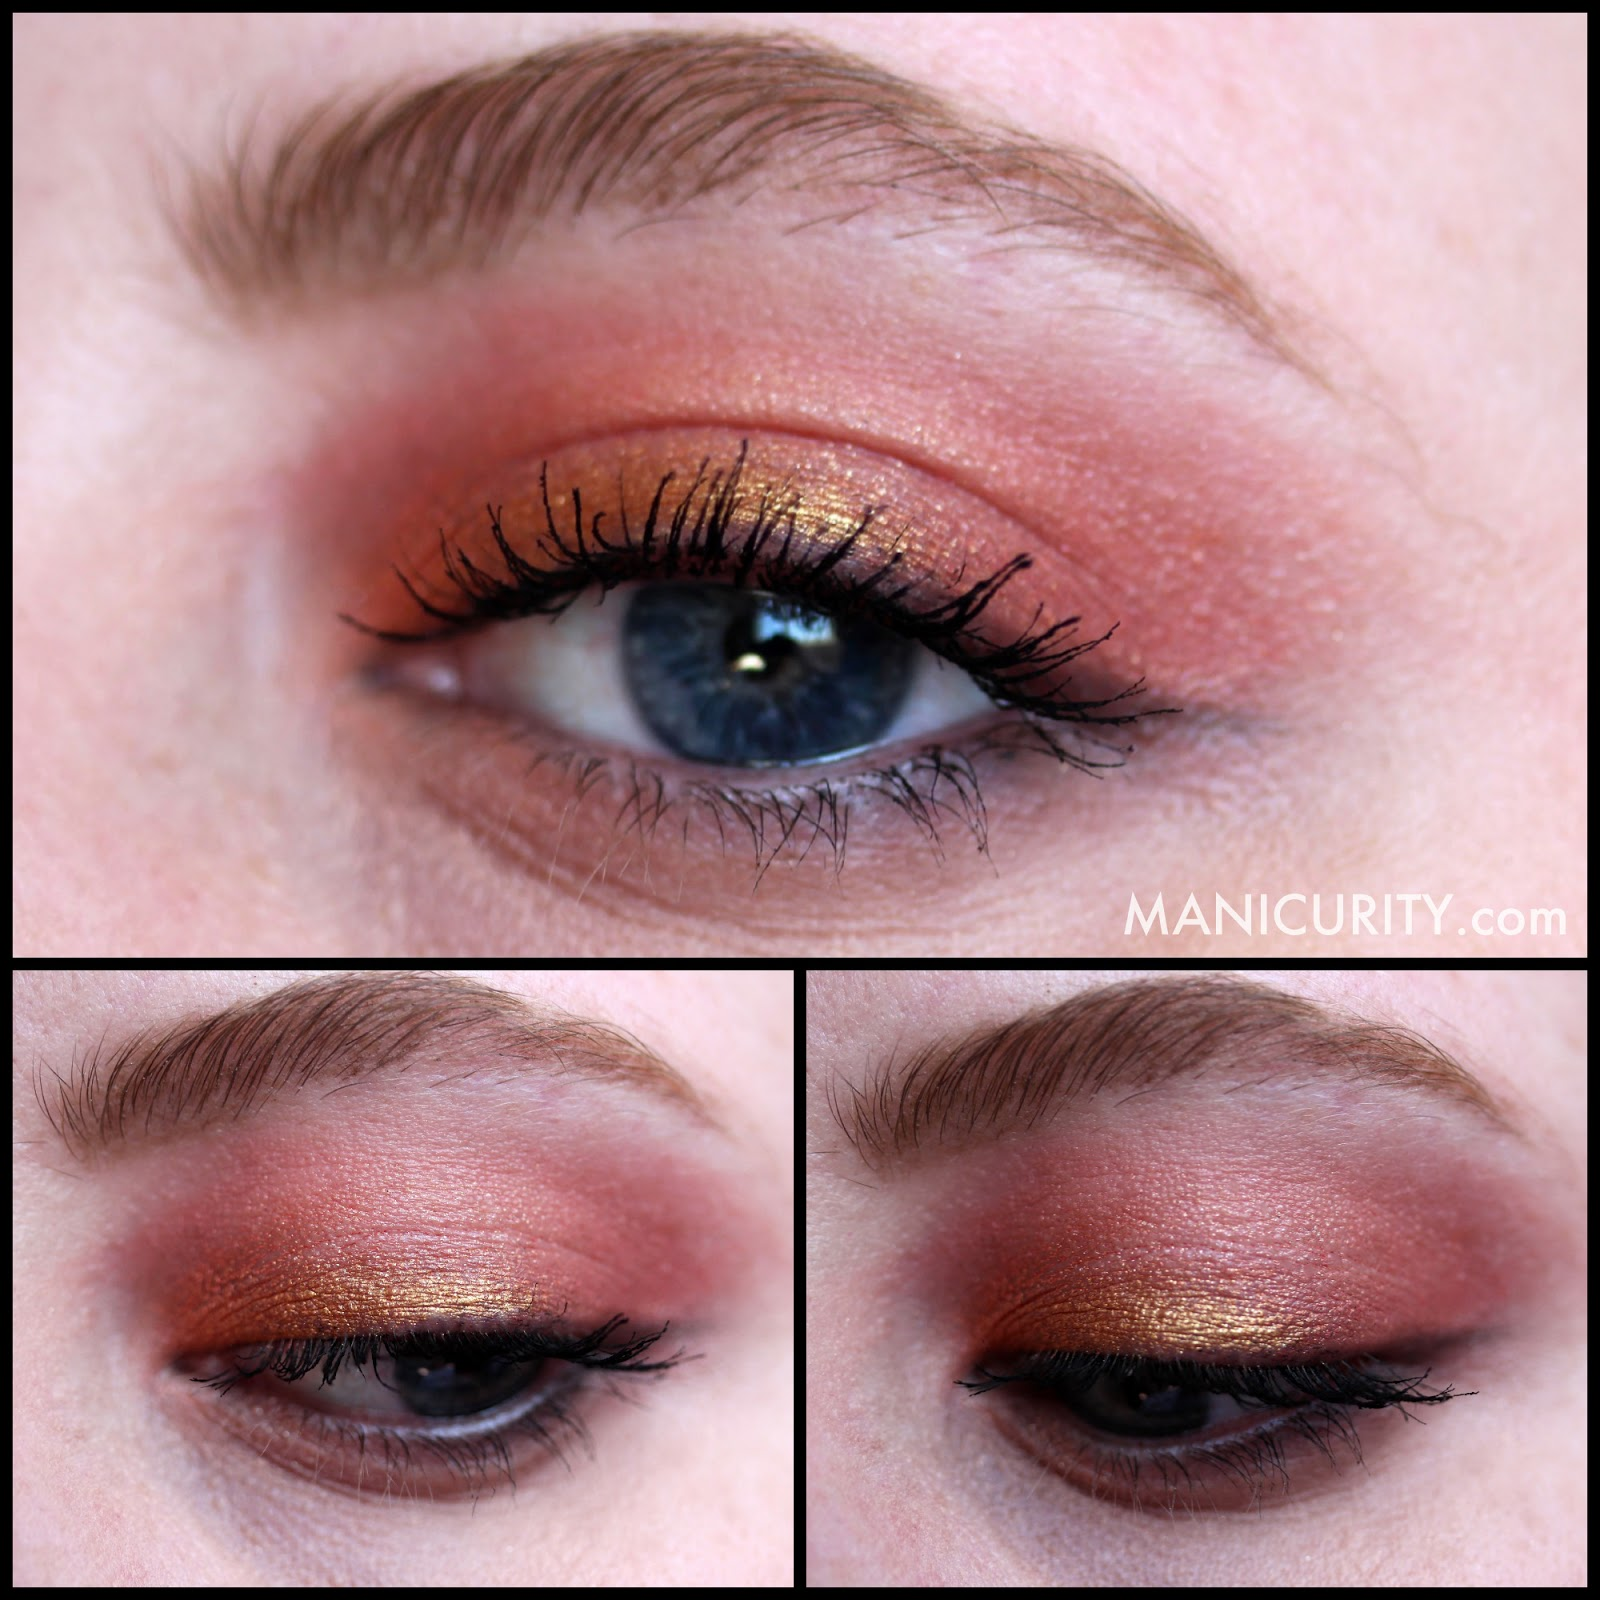 Manicurity - Ipsy Glam Bag December 2013 Hits & Misses | Be a Bombshell Cosmetics The One Stick in Sunset (cream multiple product) swatches, review, wear test - on eyes, lips, and cheeks